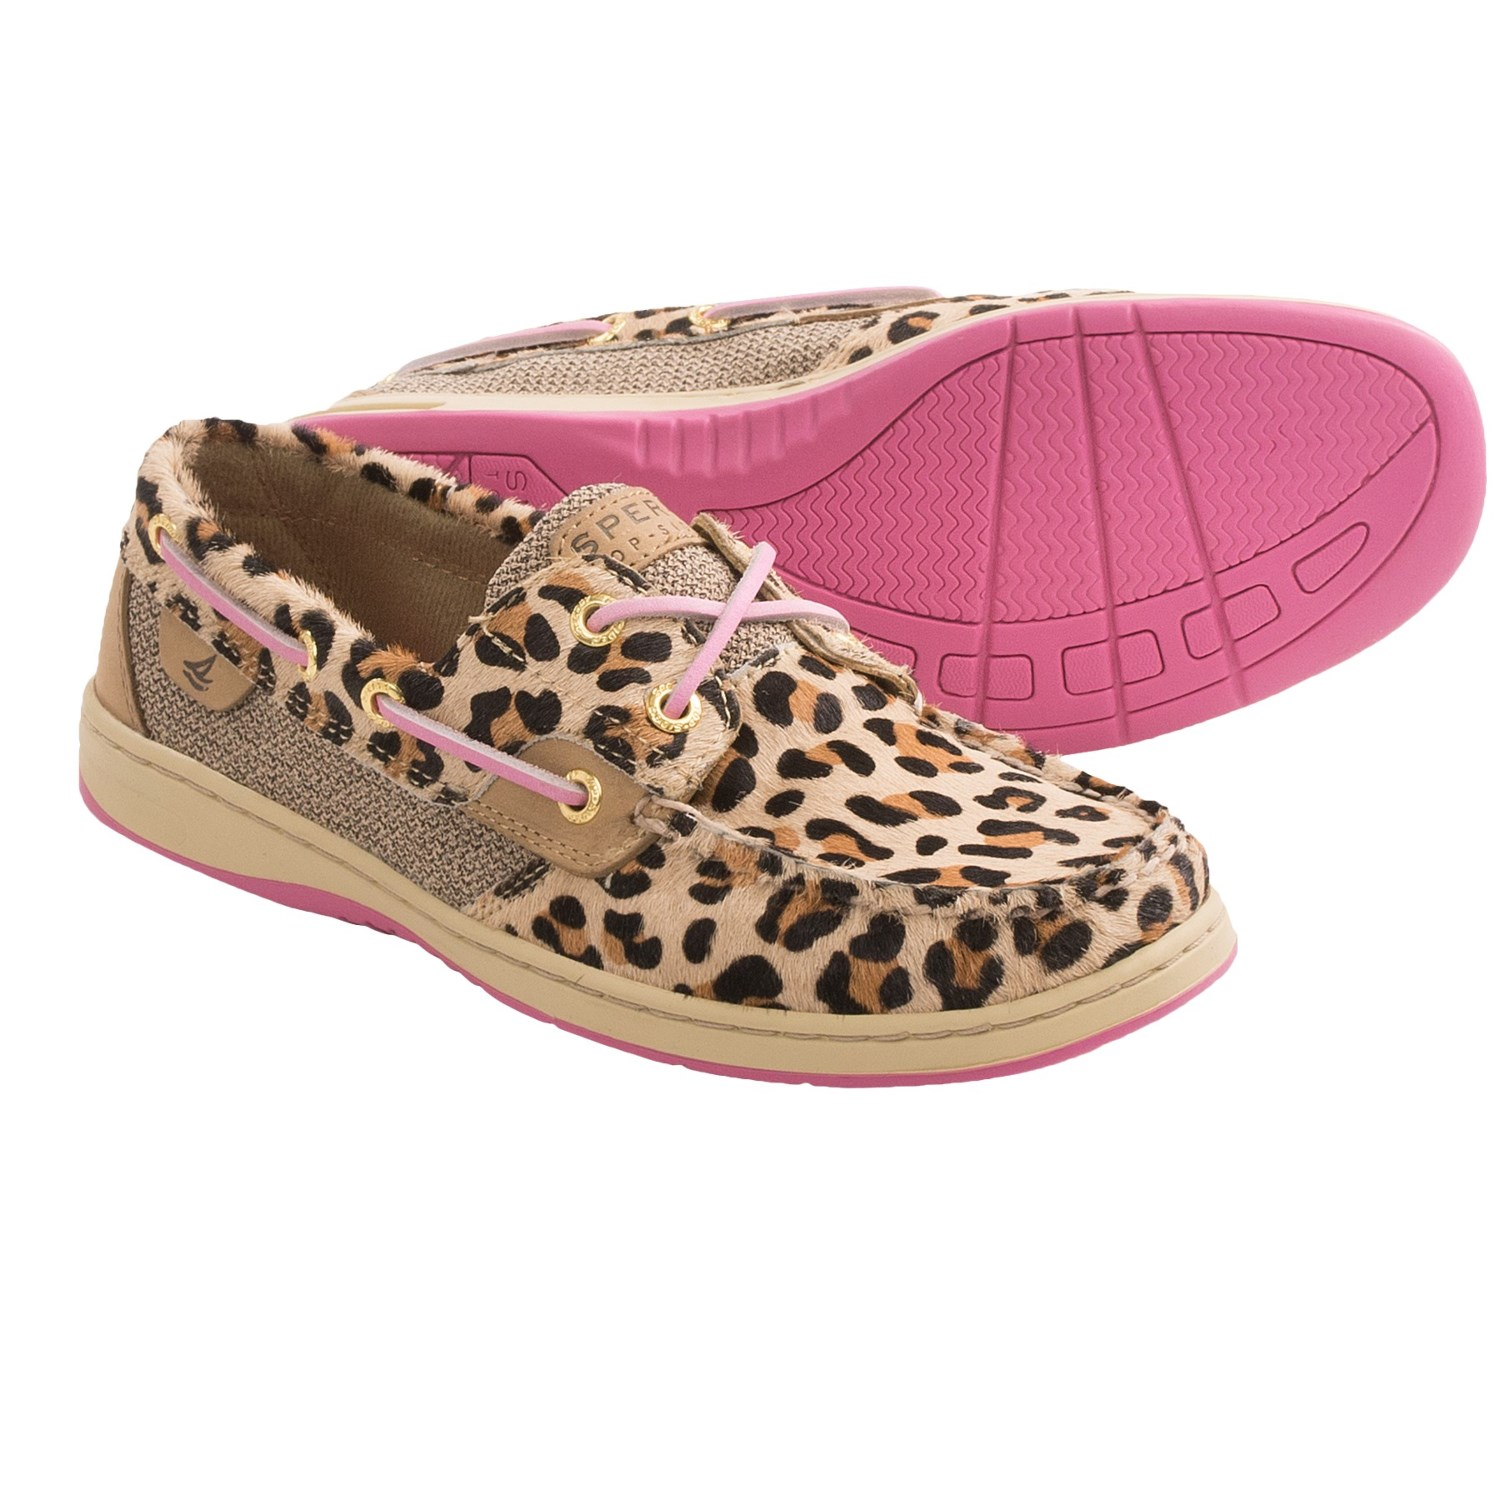 Sperry Top Sider Leopard Boat Shoes